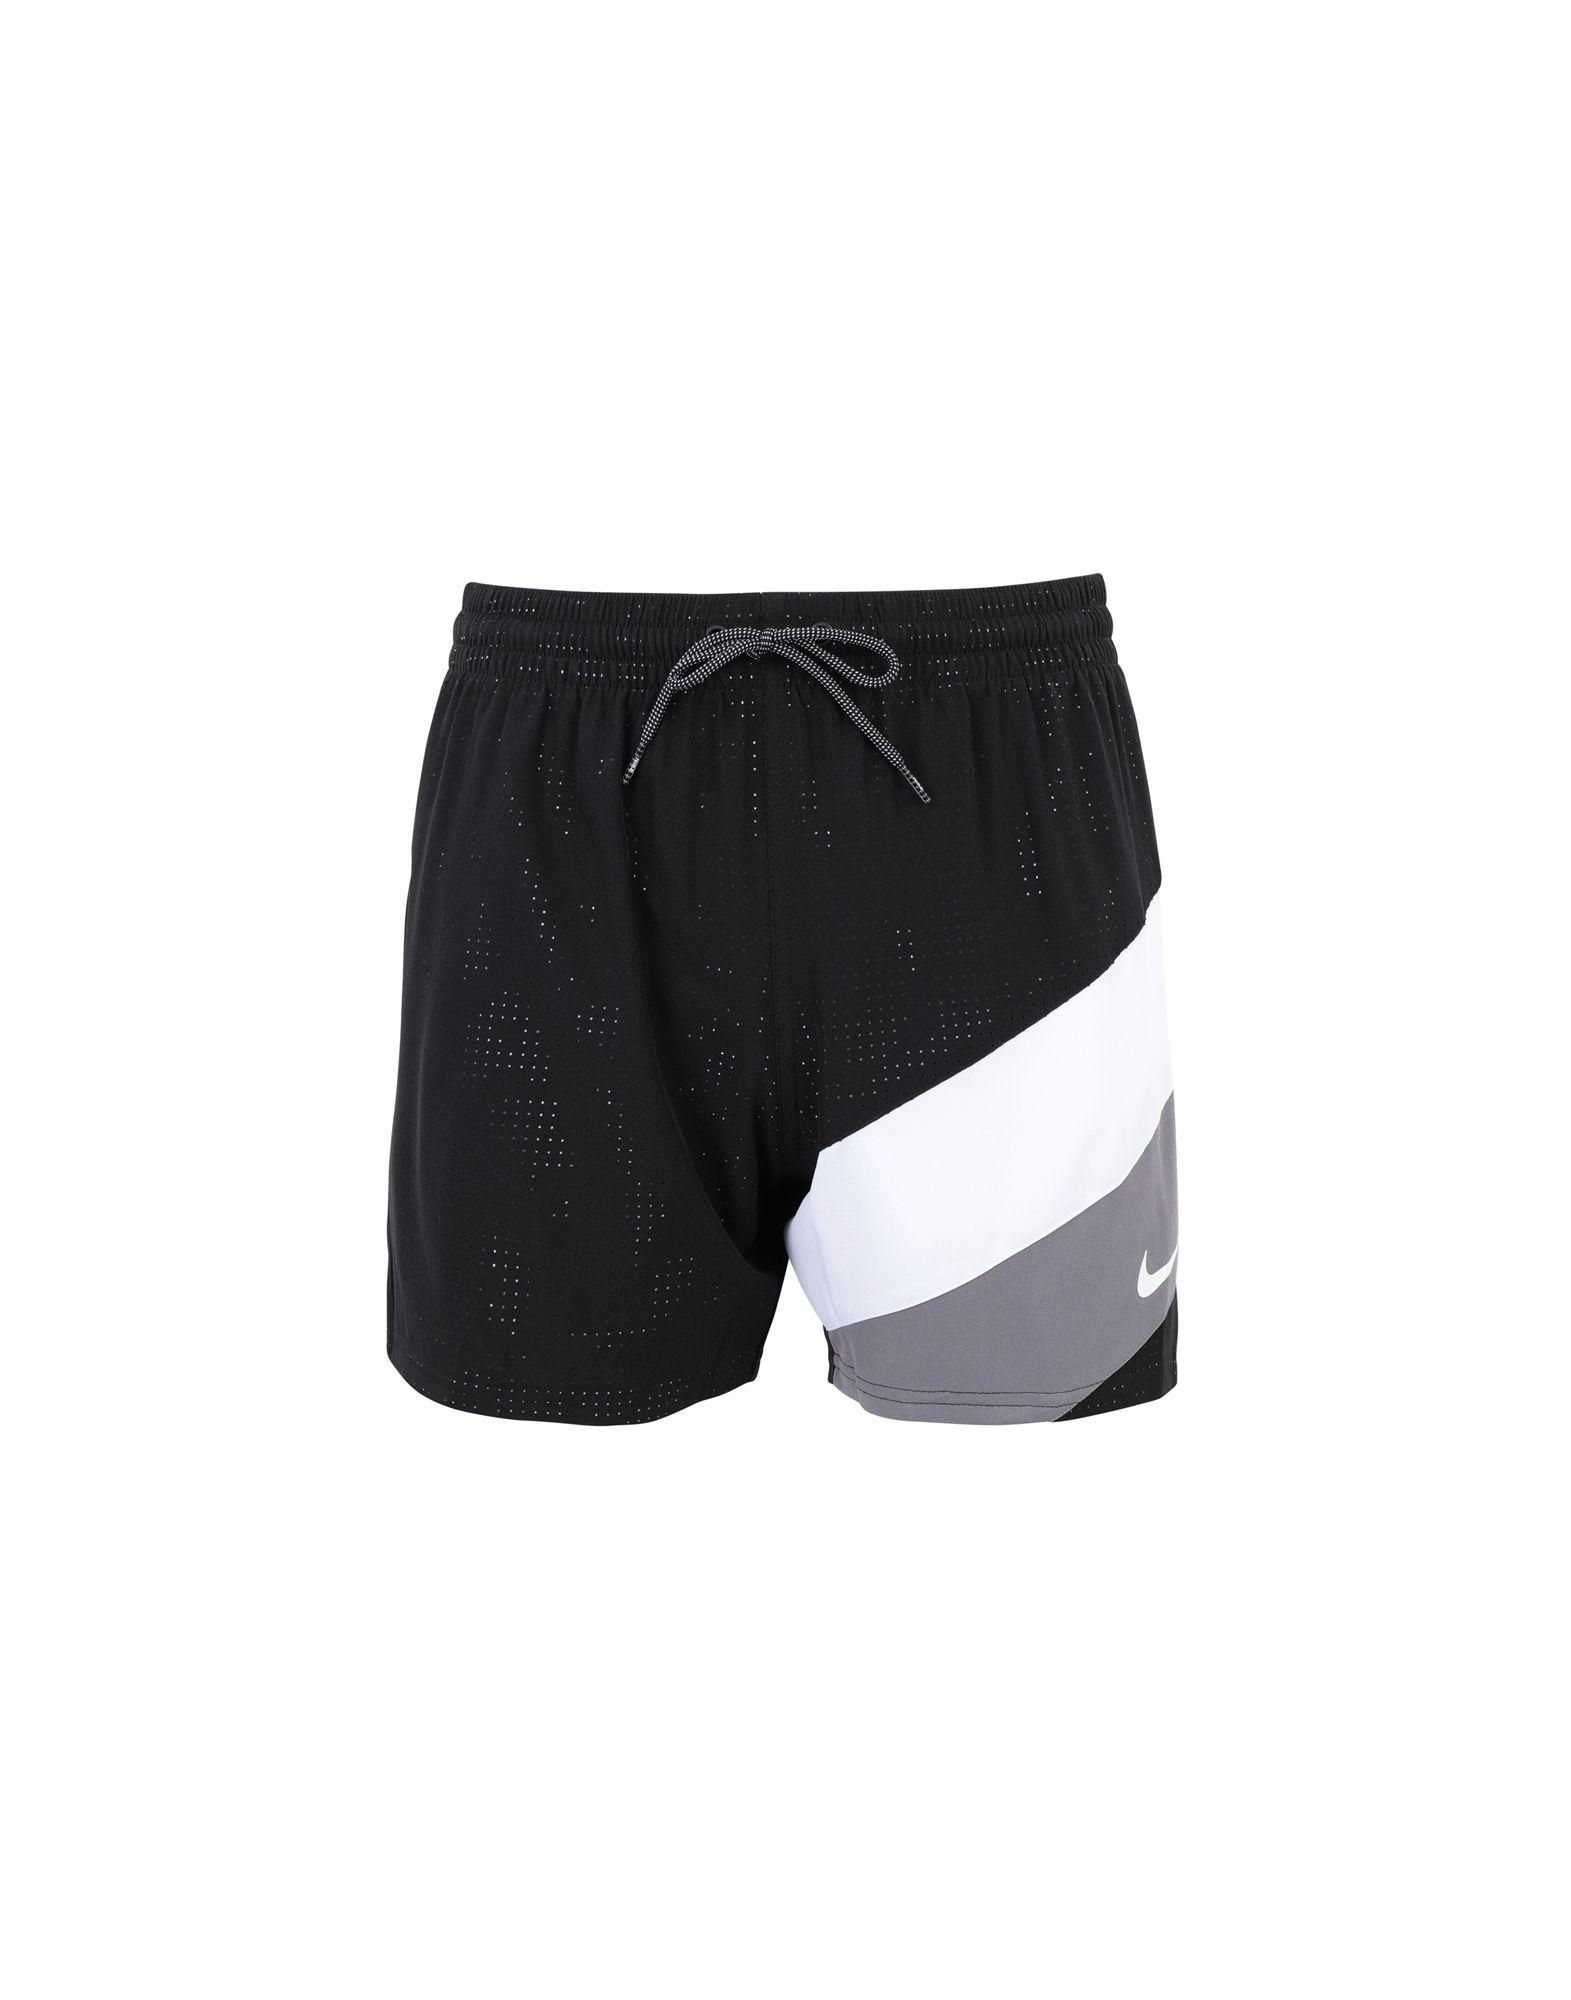 73a2f81eb3 Lyst - Nike Beach Shorts And Pants in Black for Men